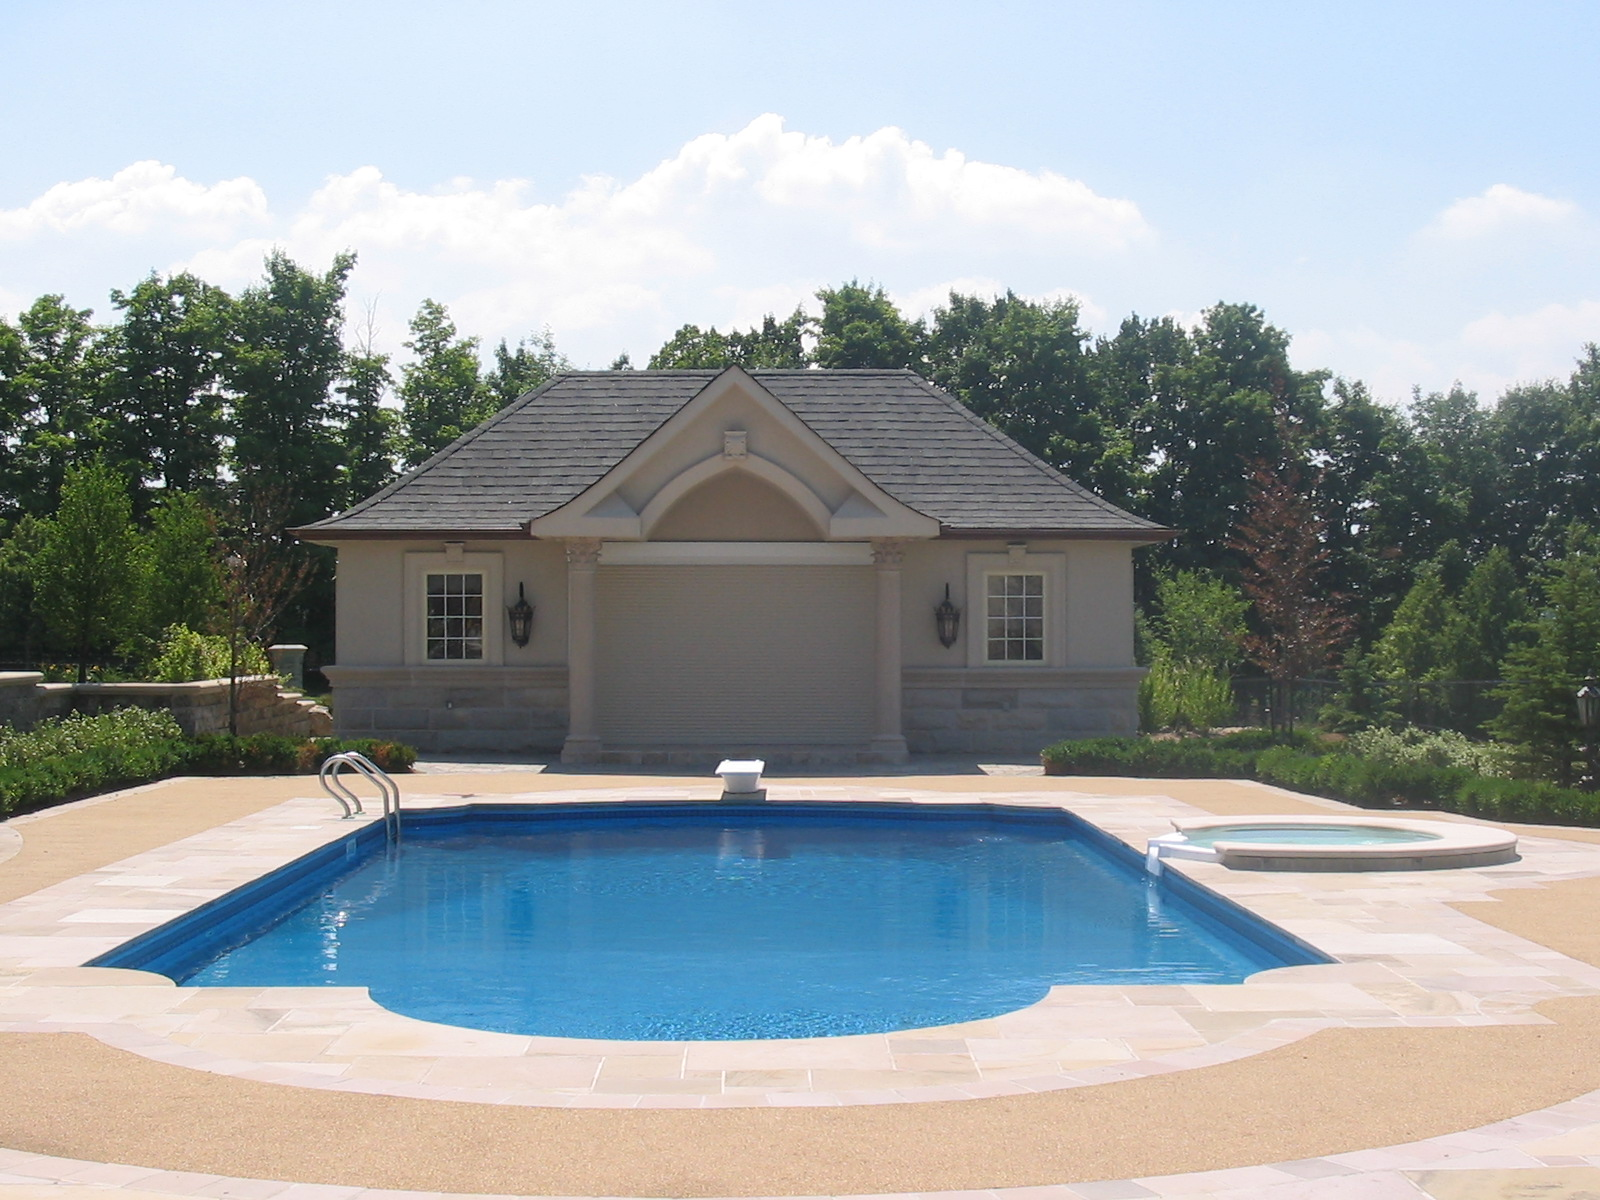 Doughboy inground pools reviews round designs for Pool design by laly llc